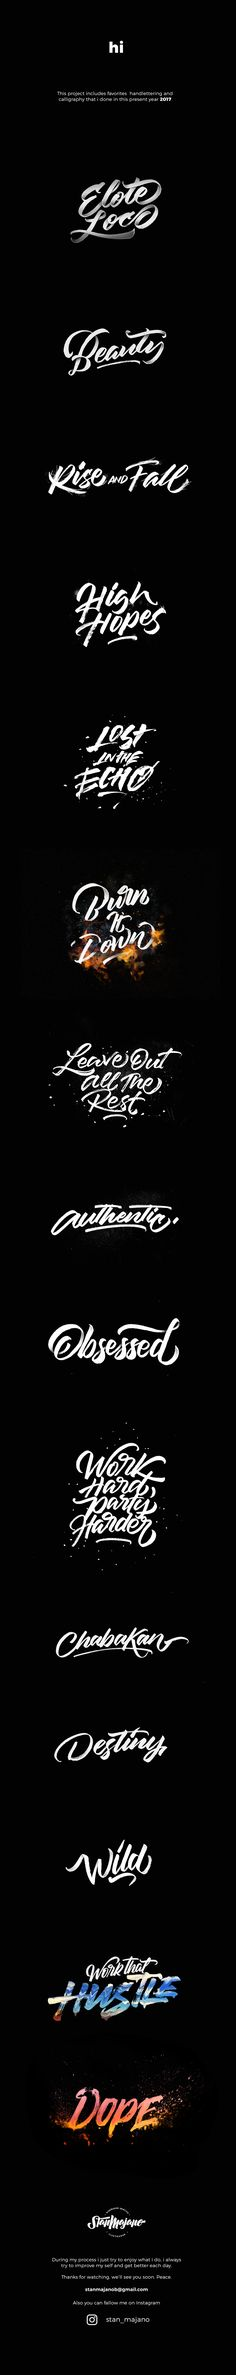 "Echa un vistazo a mi proyecto @Behance: ""Calligraphy and Lettering 2017"" https://www.behance.net/gallery/55432847/Calligraphy-and-Lettering-2017"